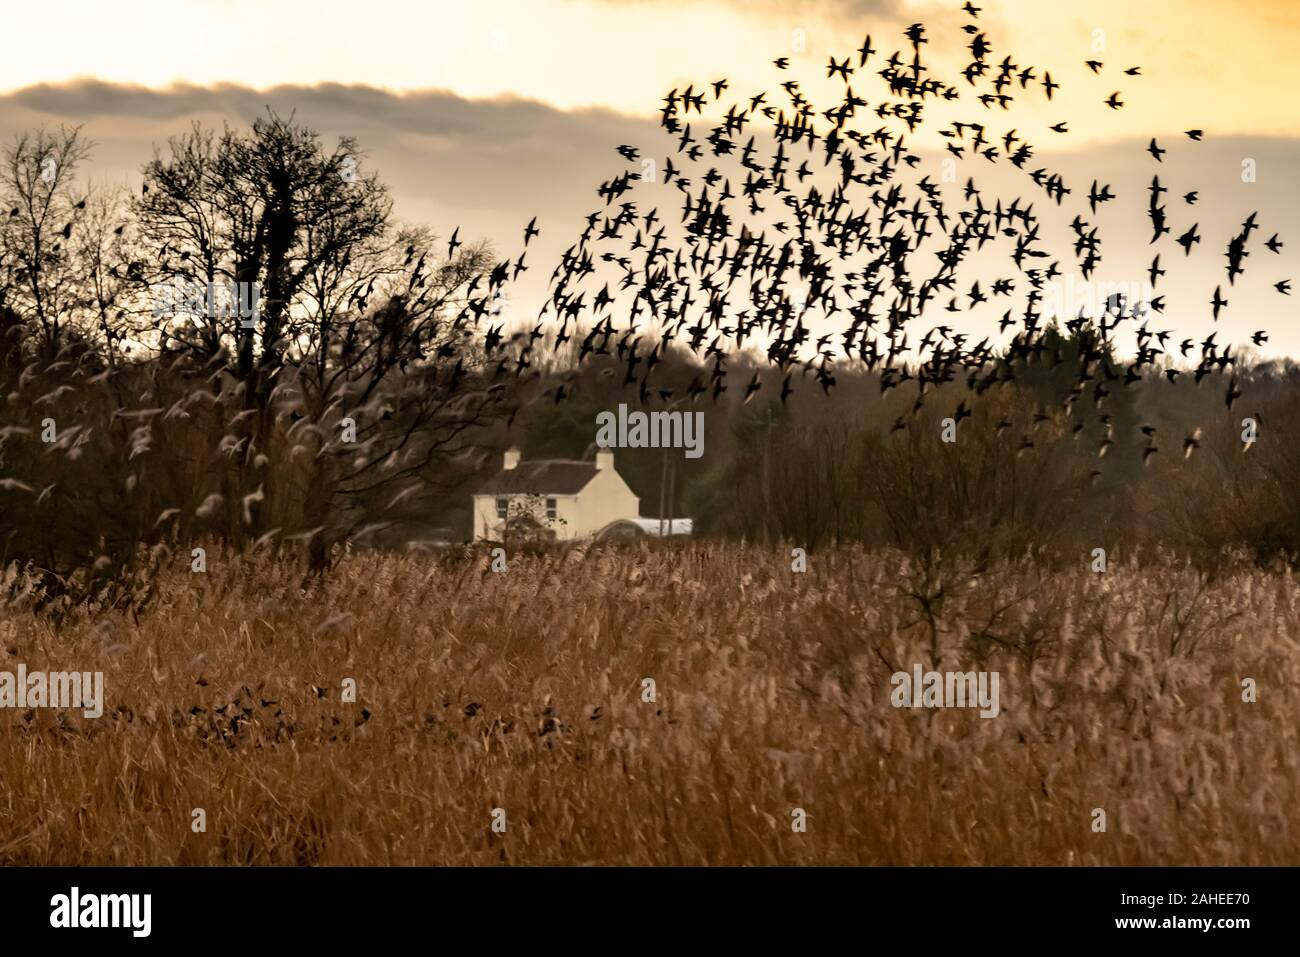 UK Weather: Christmas Eve evening starling murmuration at Ham Wall RSPB reserve, part of Avalon marshes wetlands nature reserve in Somerset, UK. Stock Photo